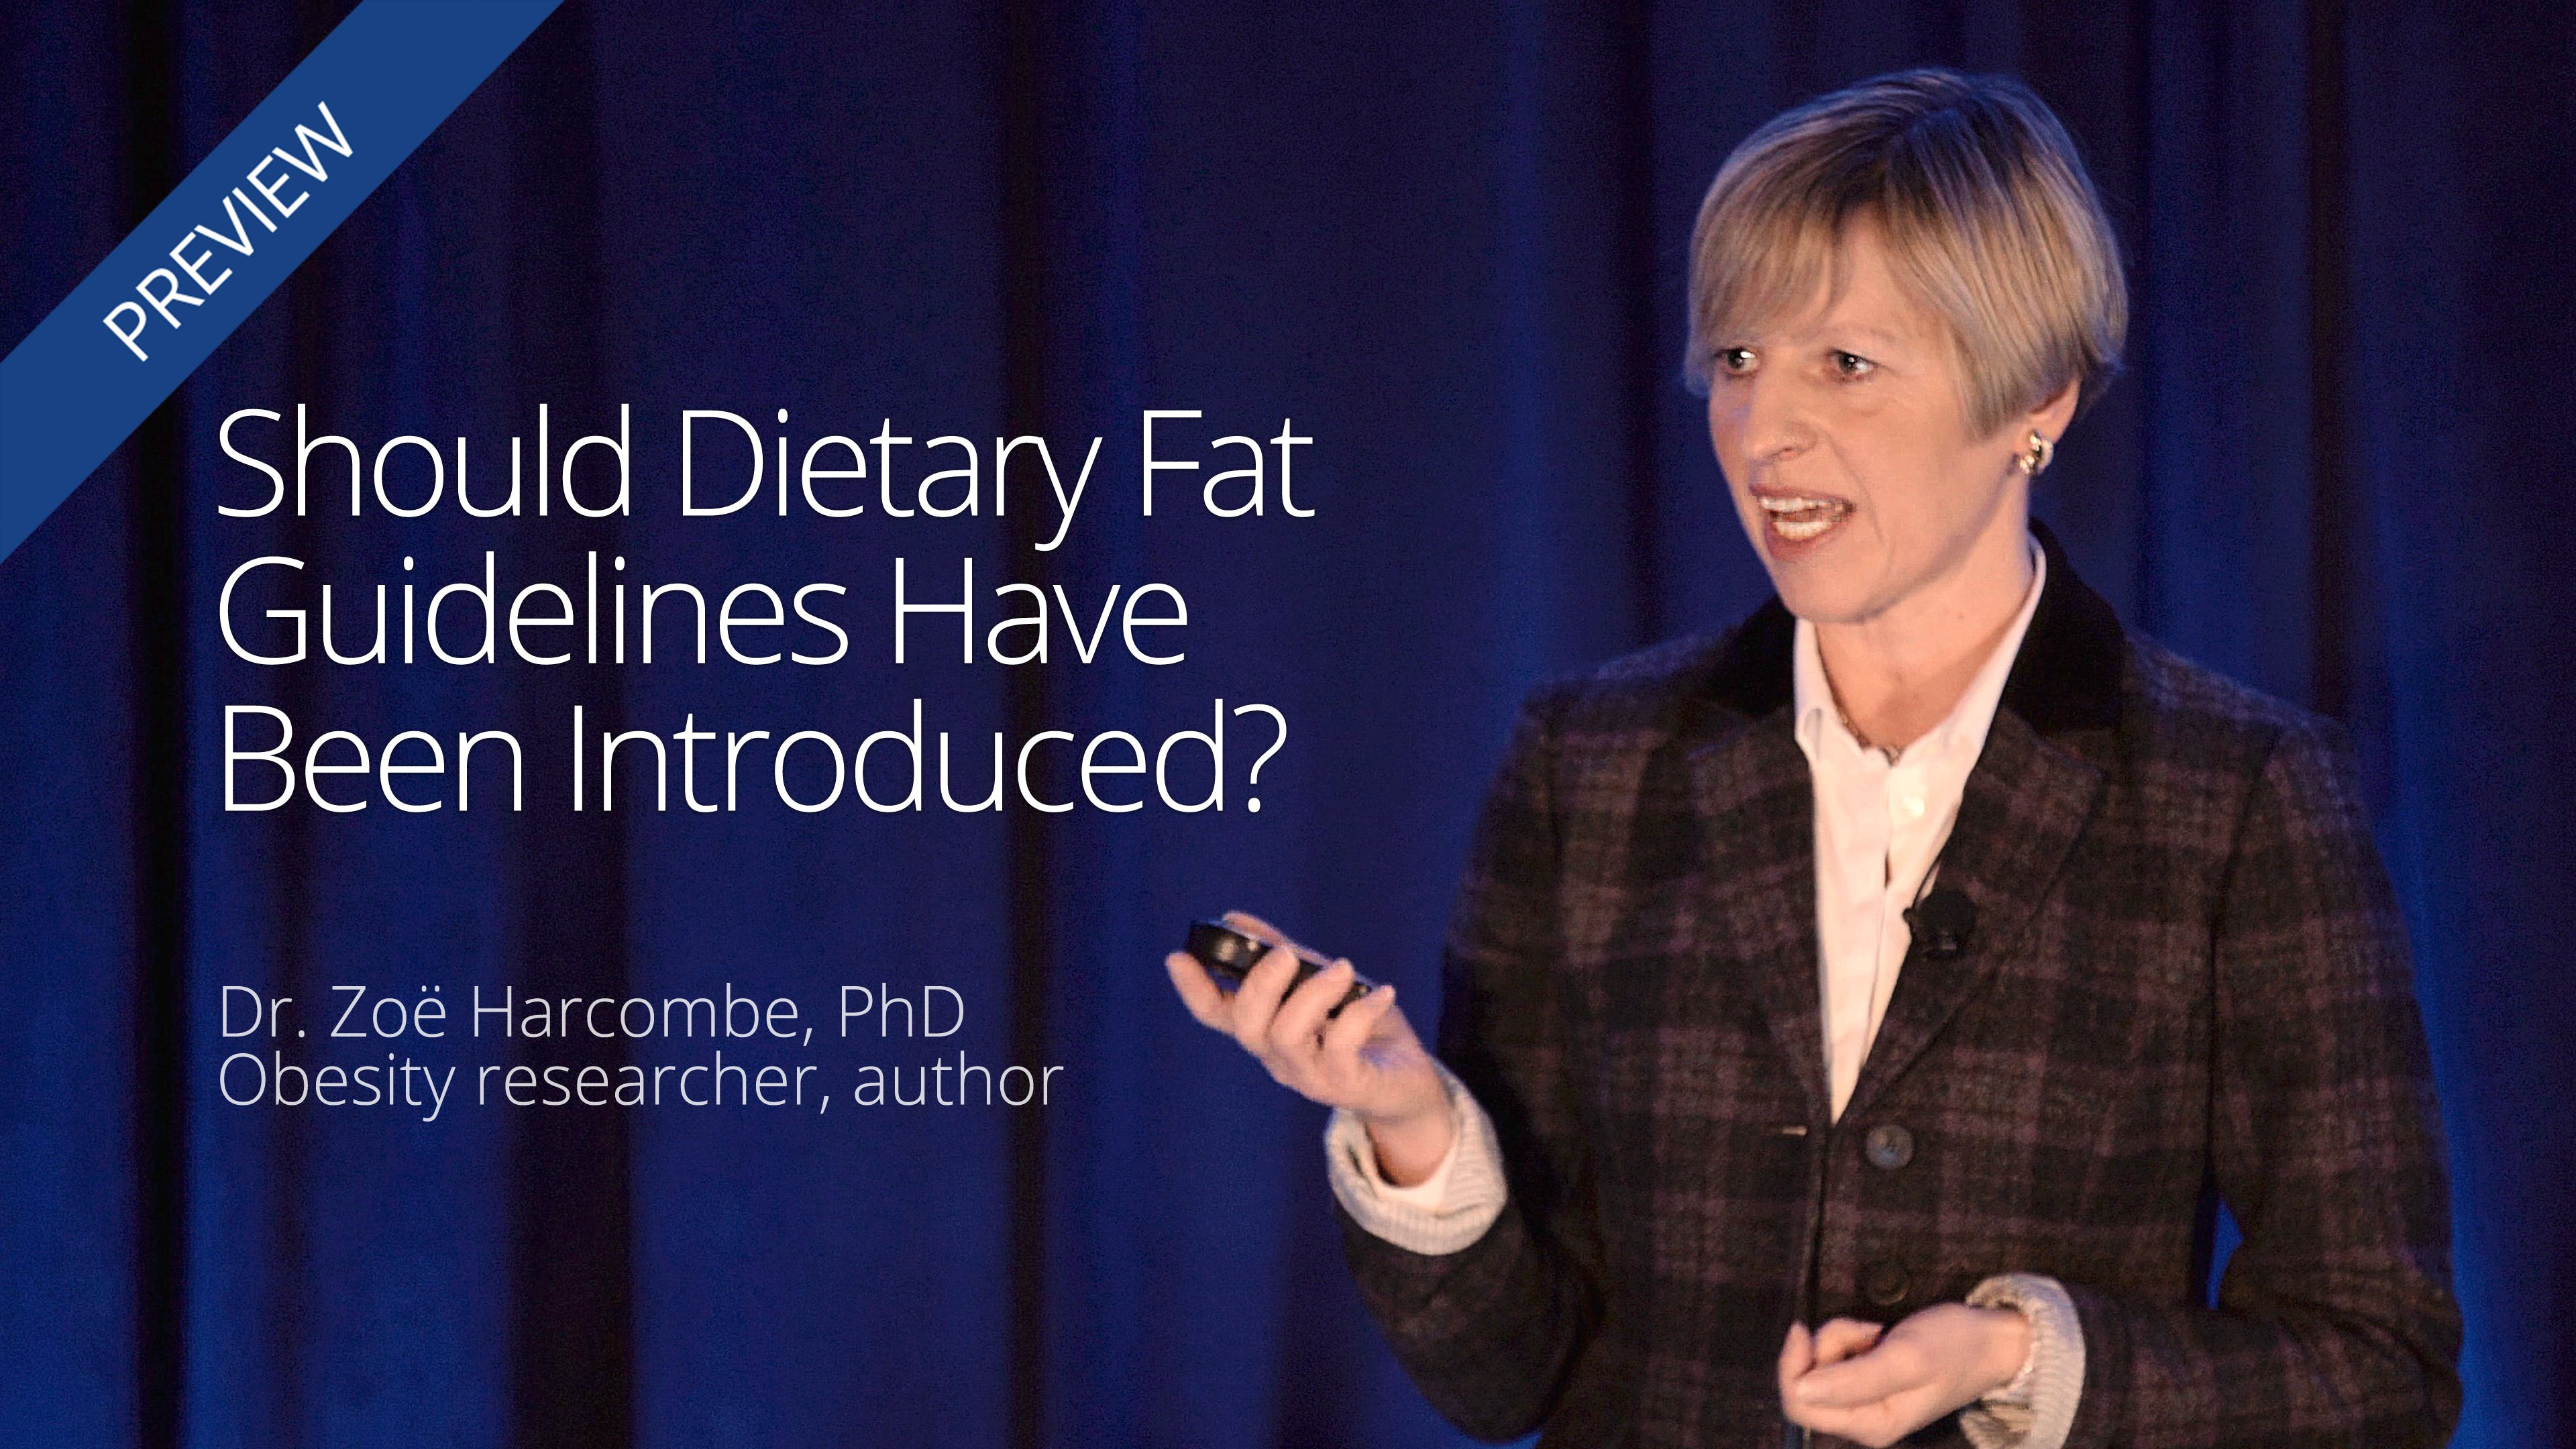 Should Dietary Fat Guidelines Have Been Introduced?